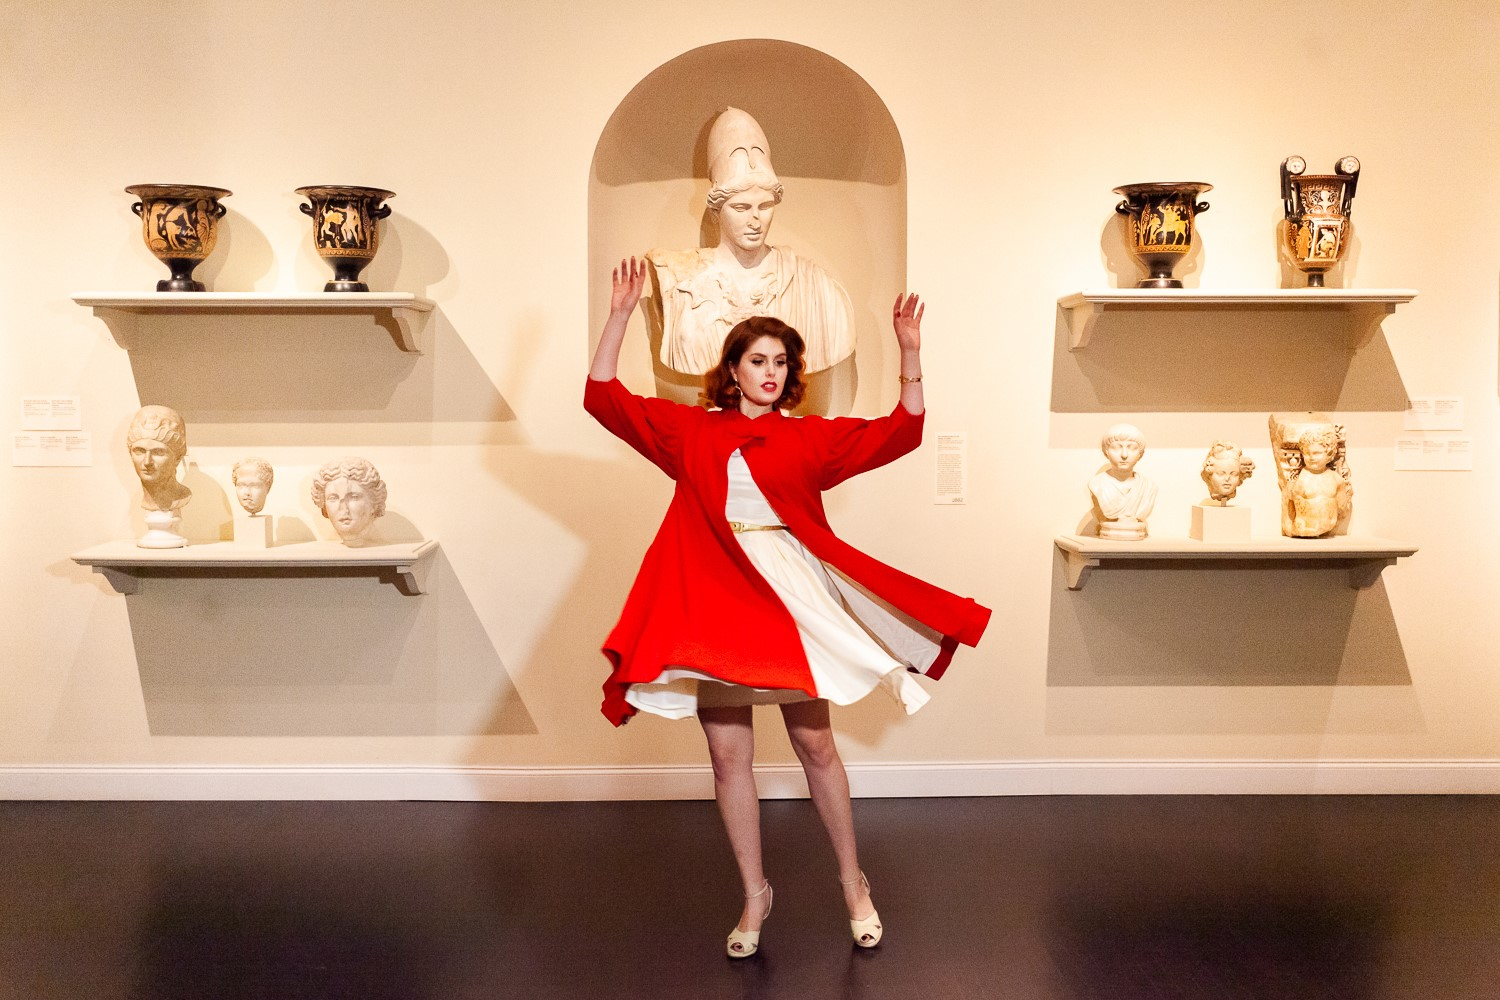 Woman in white dress and red coat twirls in front of sculptures